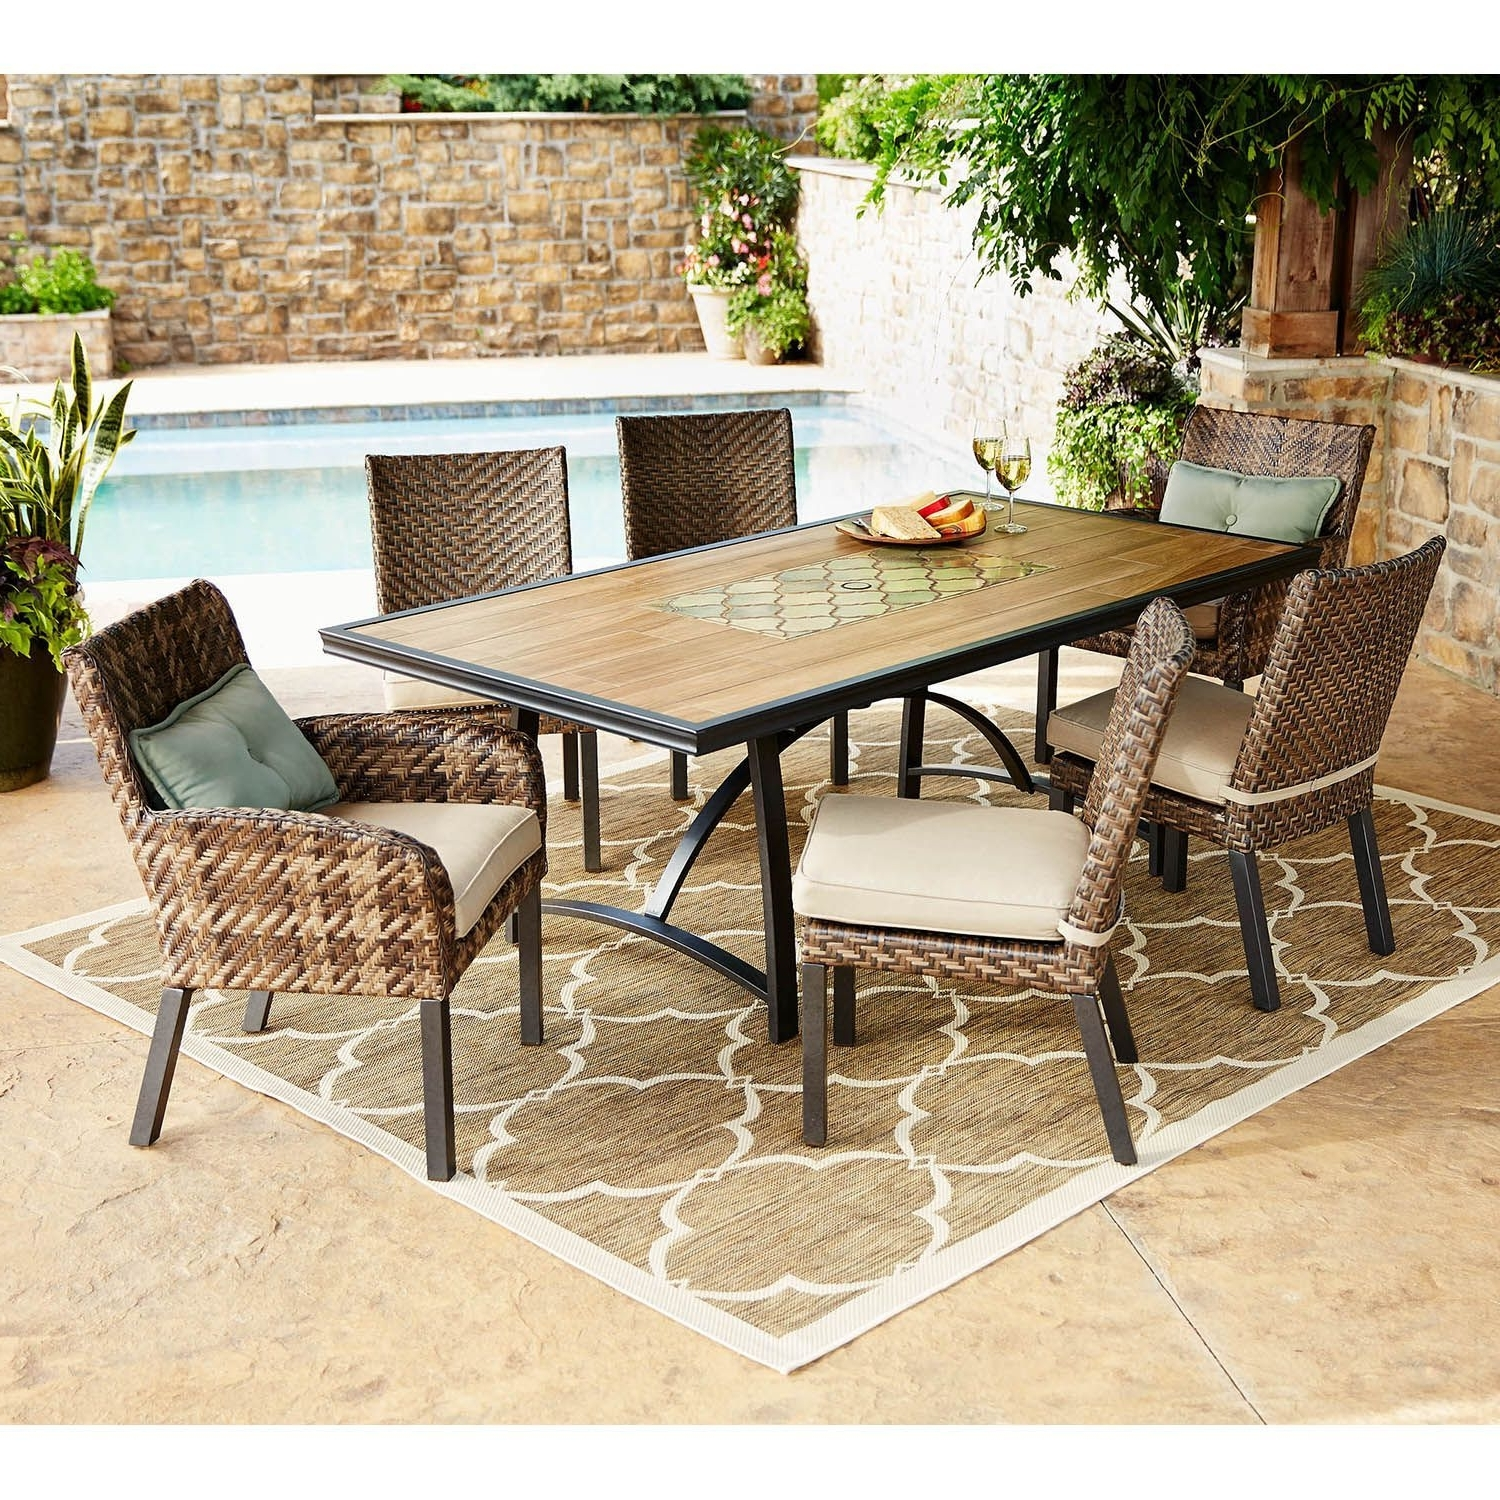 Member's Mark Essex 7 Piece Dining Set With Premium Sunbrella Fabric Within Most Popular Patio Conversation Sets At Sam's Club (View 6 of 20)